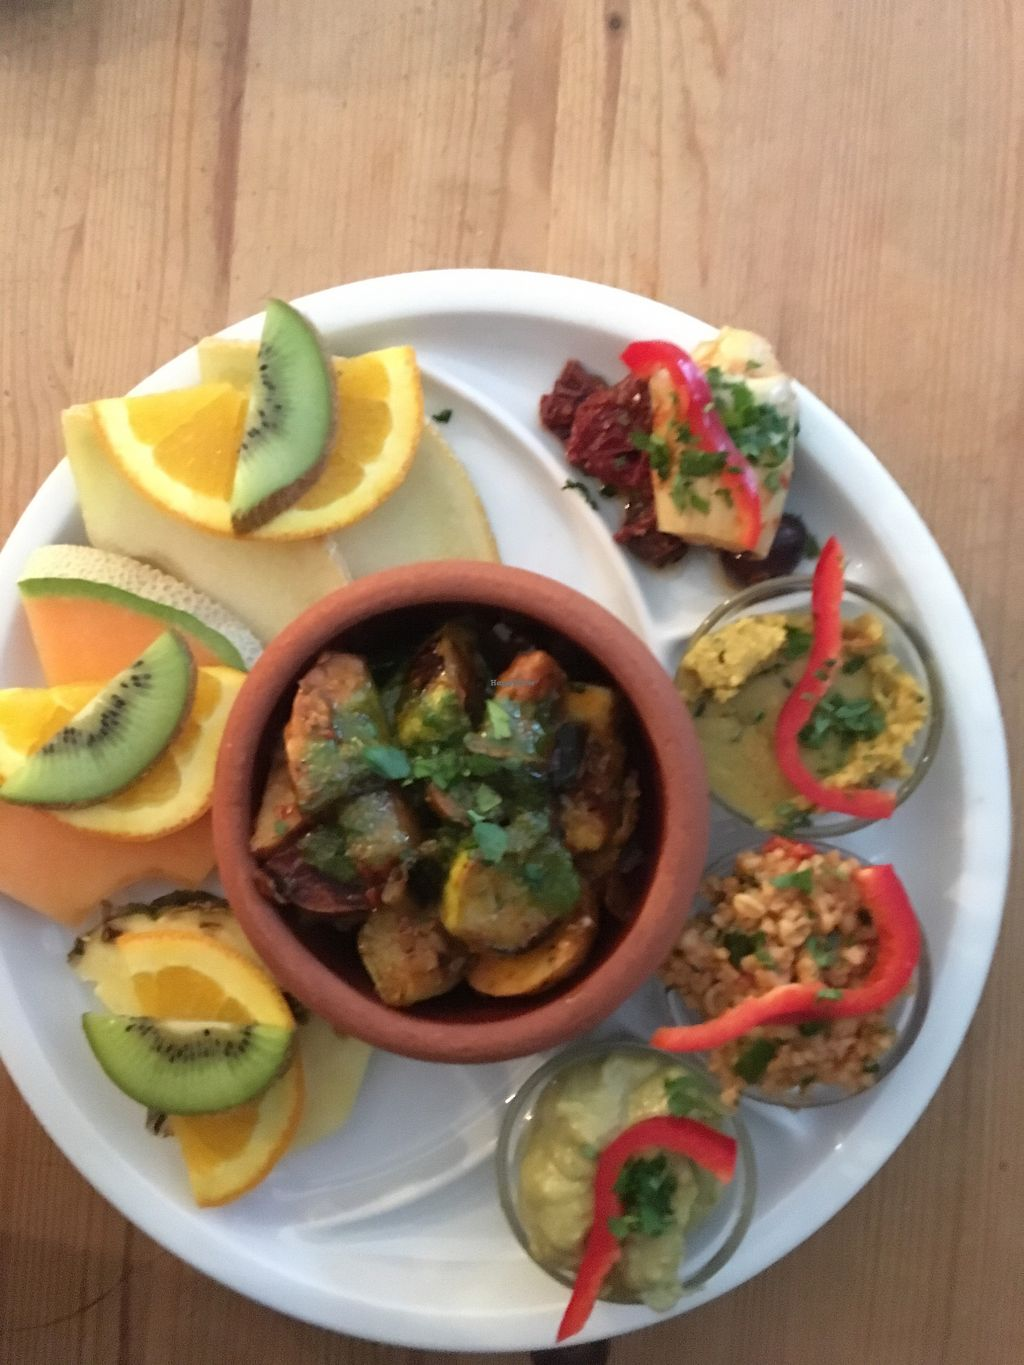 "Photo of Neither Yesterday Nor Tomorrow  by <a href=""/members/profile/JonoReilly"">JonoReilly</a> <br/>Vegan breakfast with antipasti, roast veg, hummus, couscous and fruit. Also comes with two bread rolls <br/> January 13, 2018  - <a href='/contact/abuse/image/104961/346055'>Report</a>"